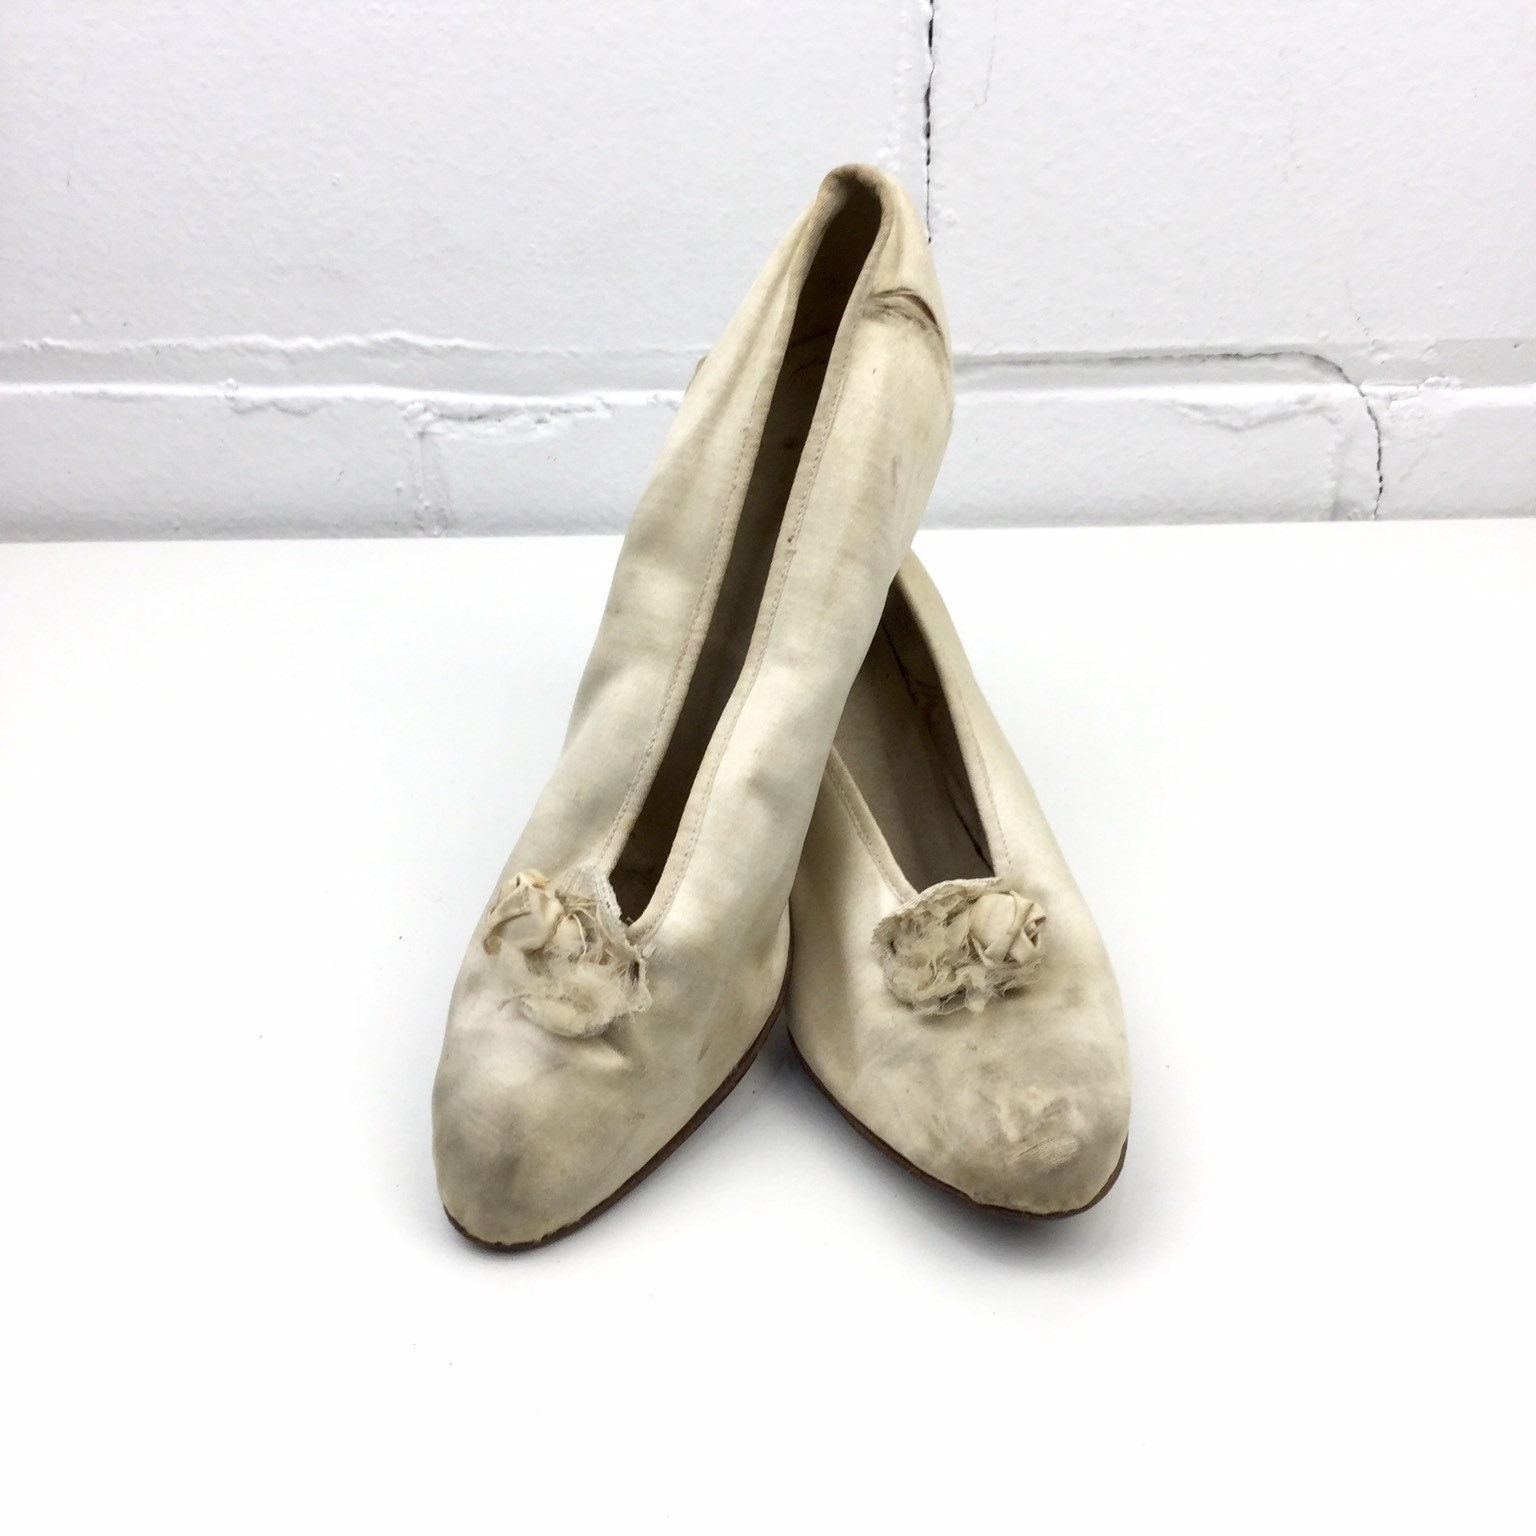 Vintage 1910s Satin Mid Height Heels with Flower Decorations, Edwardian Louis Style Slip On Pumps, Antique High Heel Bridal Shoes